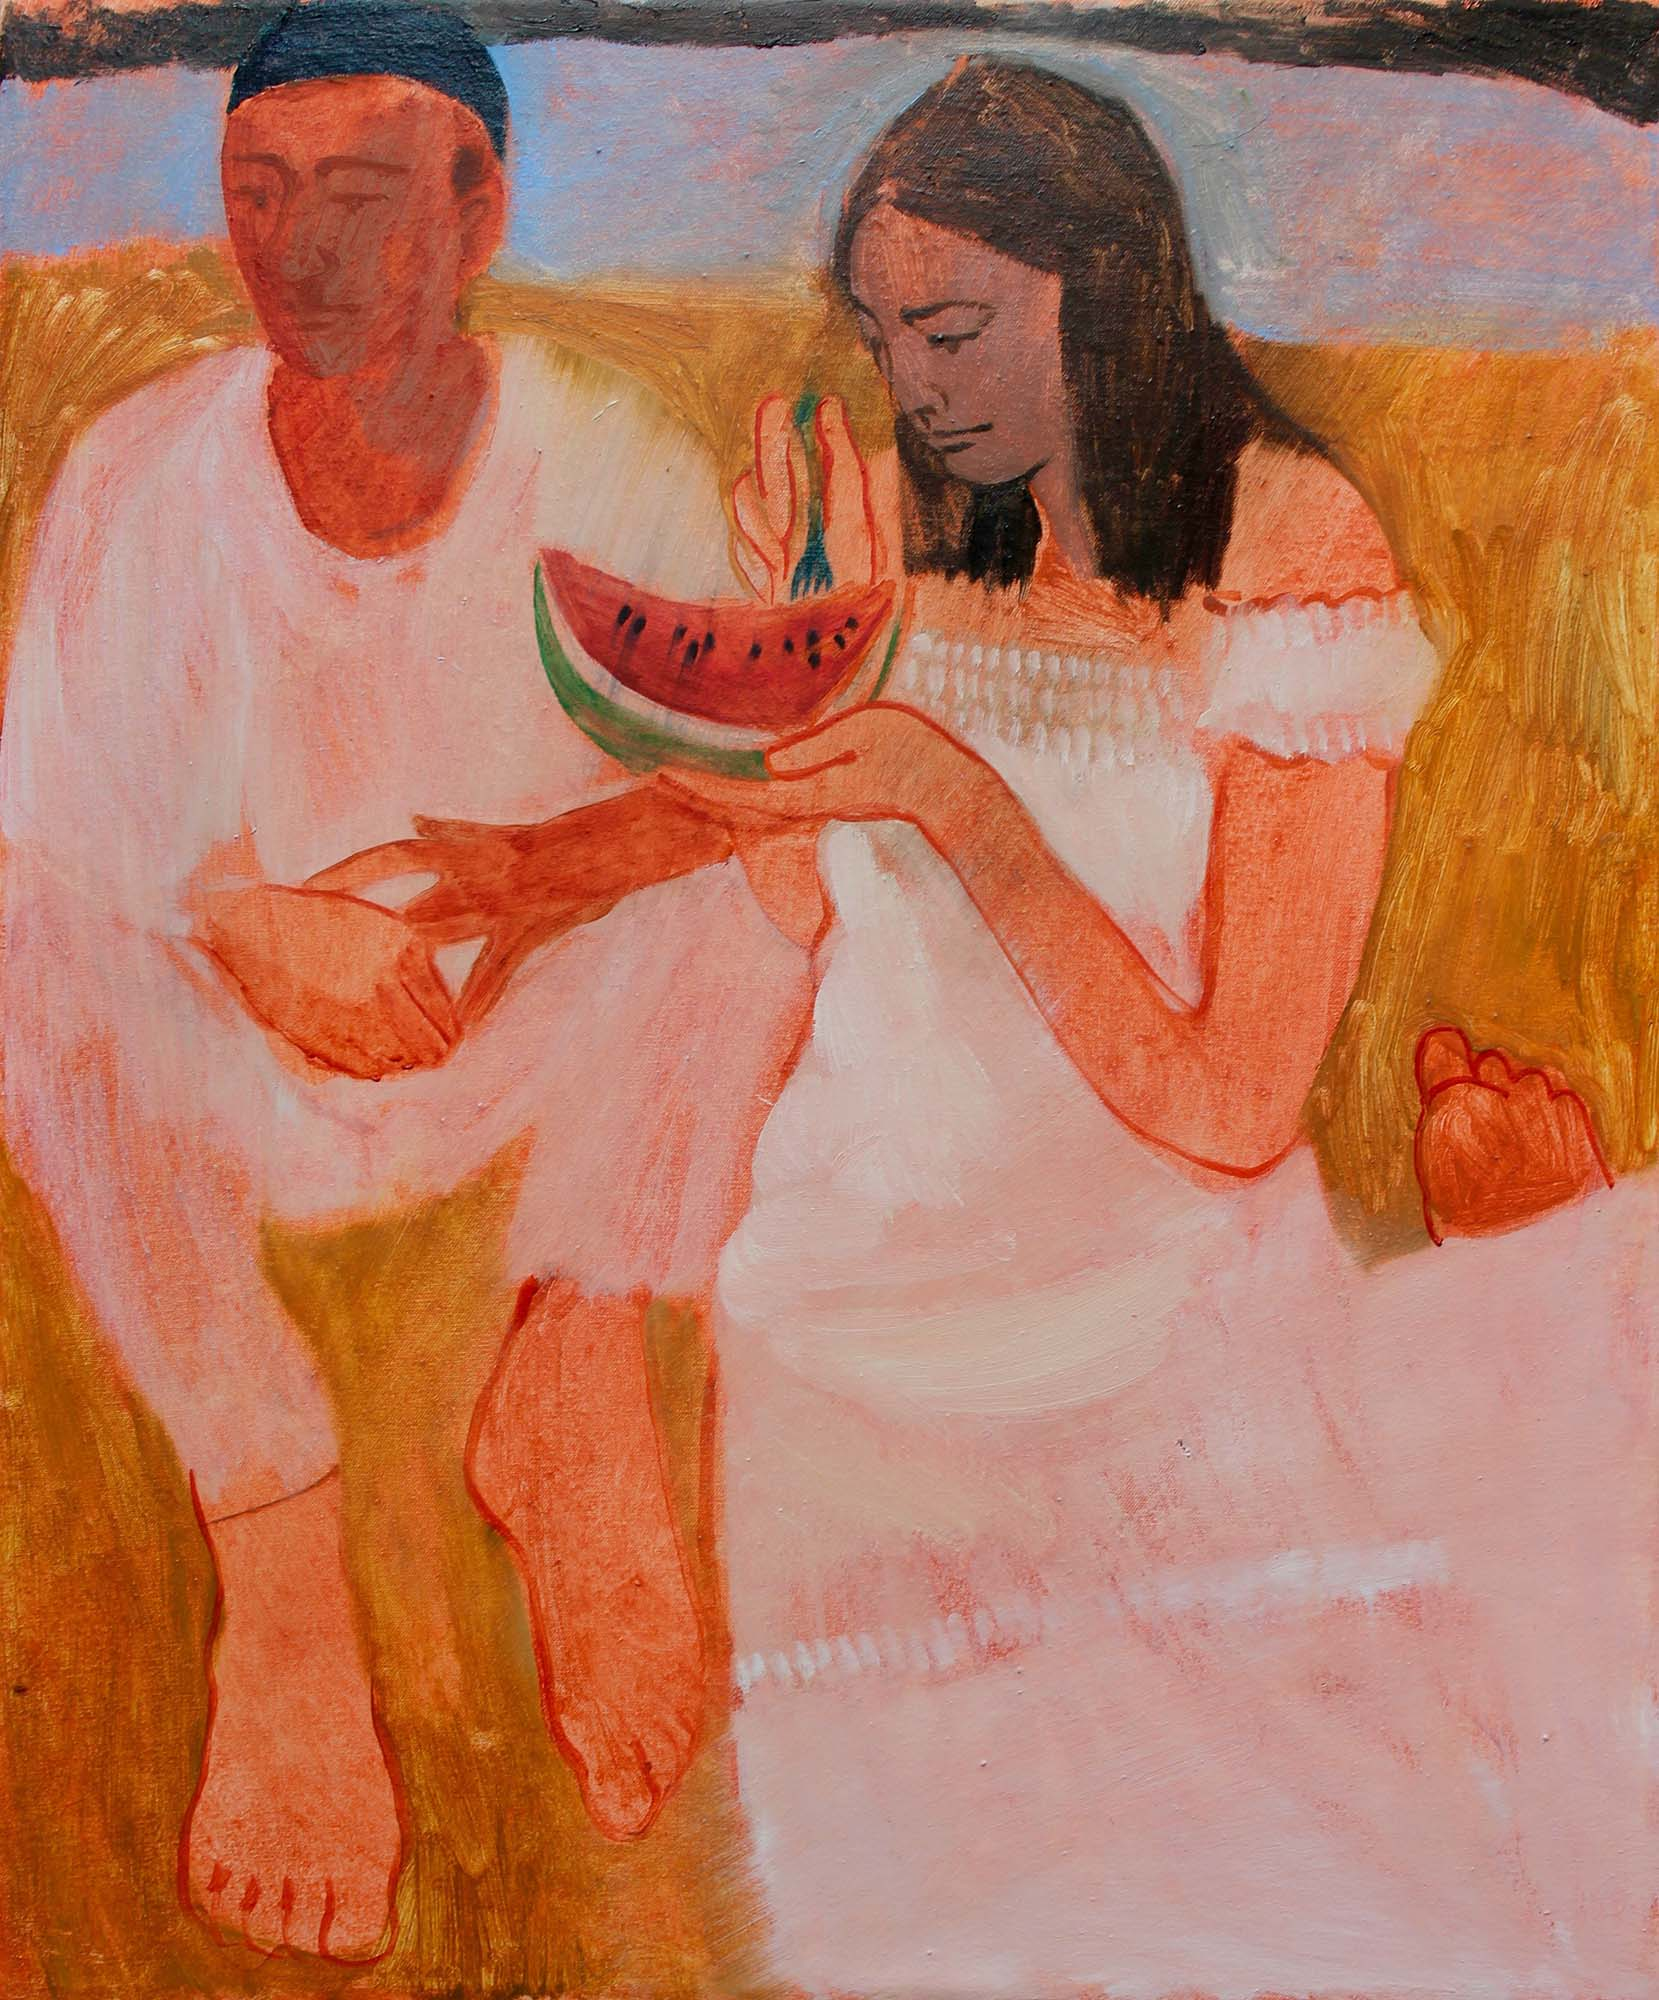 Nettle Grellier, 'You me and my melon' oil on canvas, 60x50cm February 2019